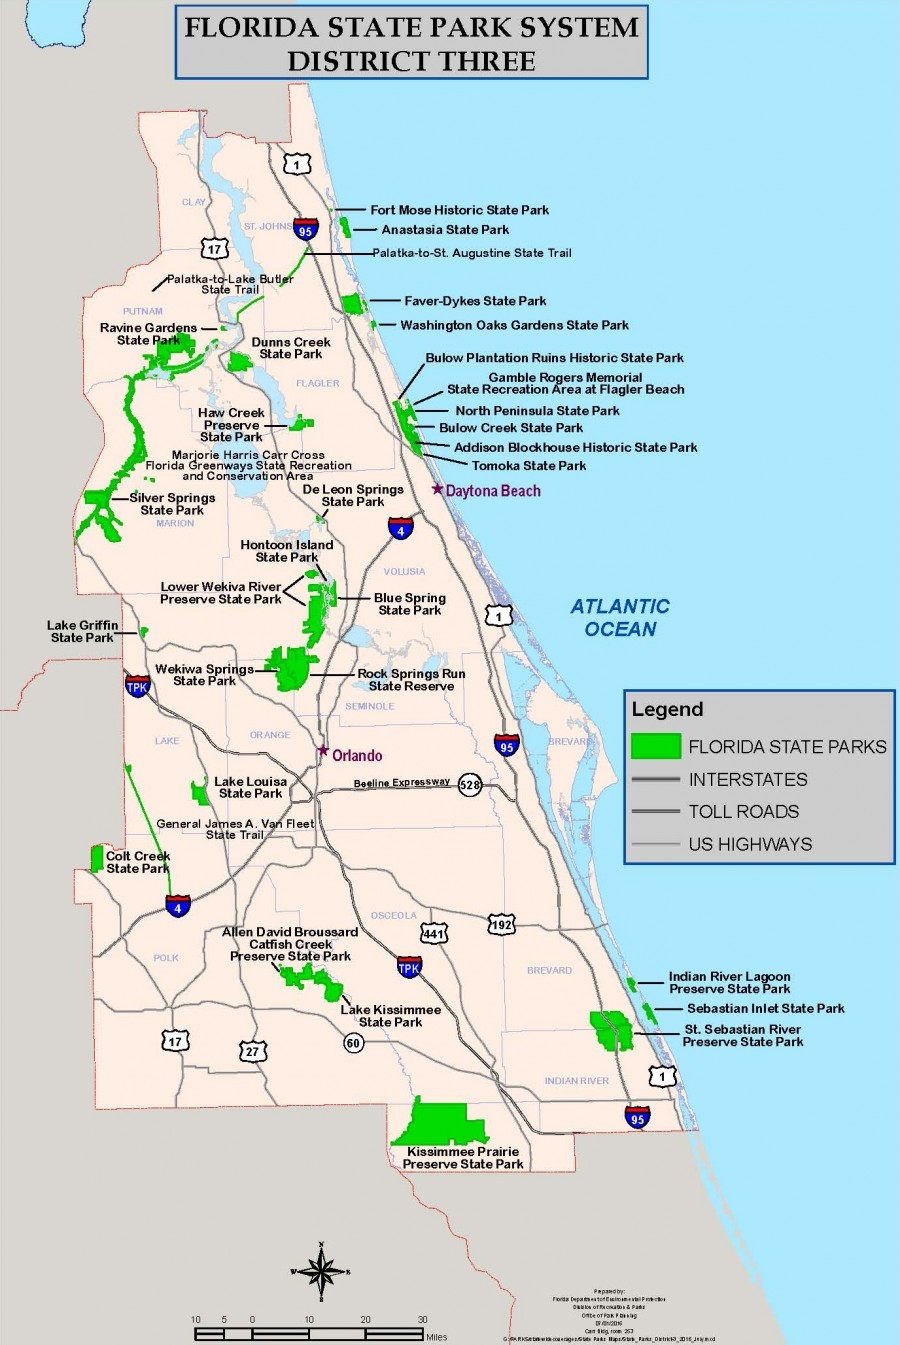 Florida State Map.Florida Park Service District 3 Map Florida Department Of